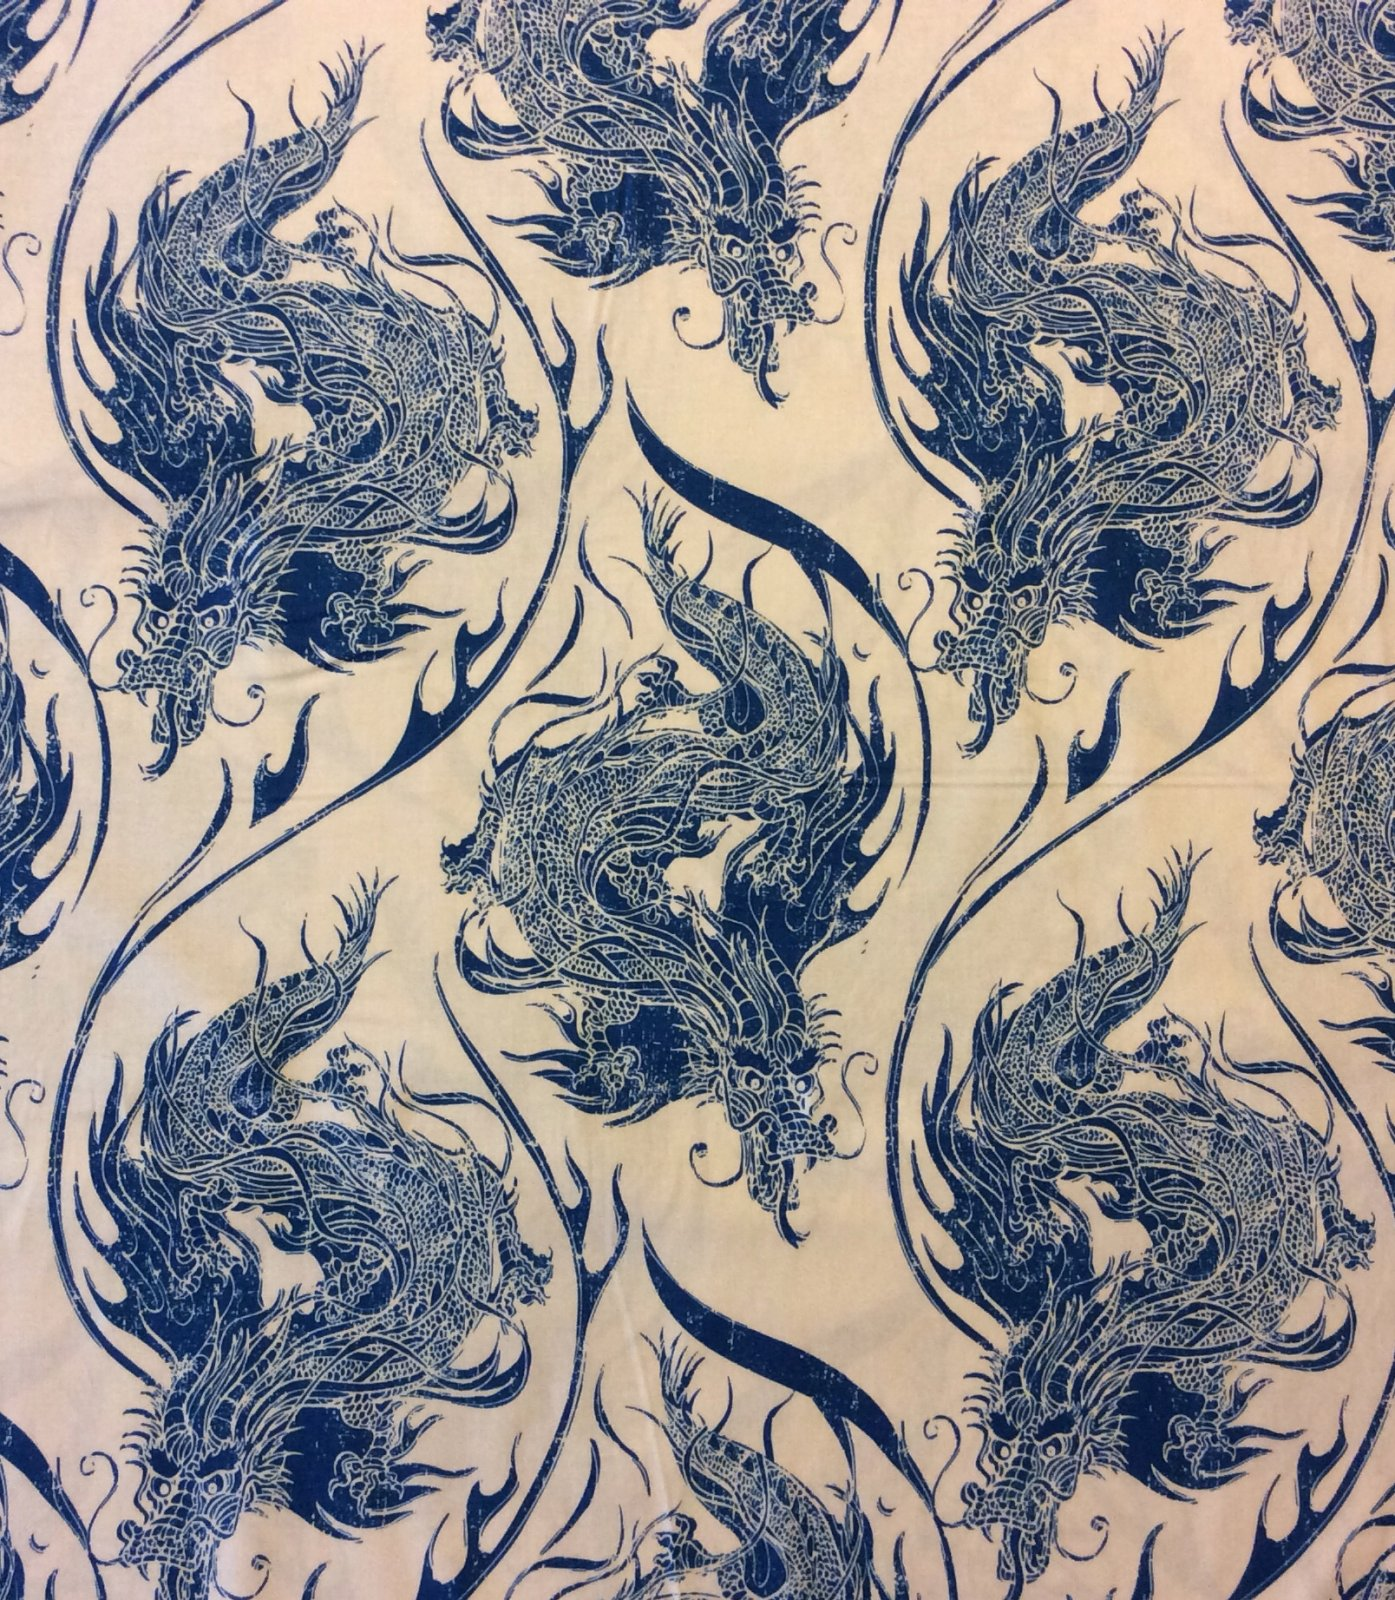 Asia Azure Dragon Fire Mythology China Japan Zodiac Cotton ... : dragon fabric for quilting - Adamdwight.com